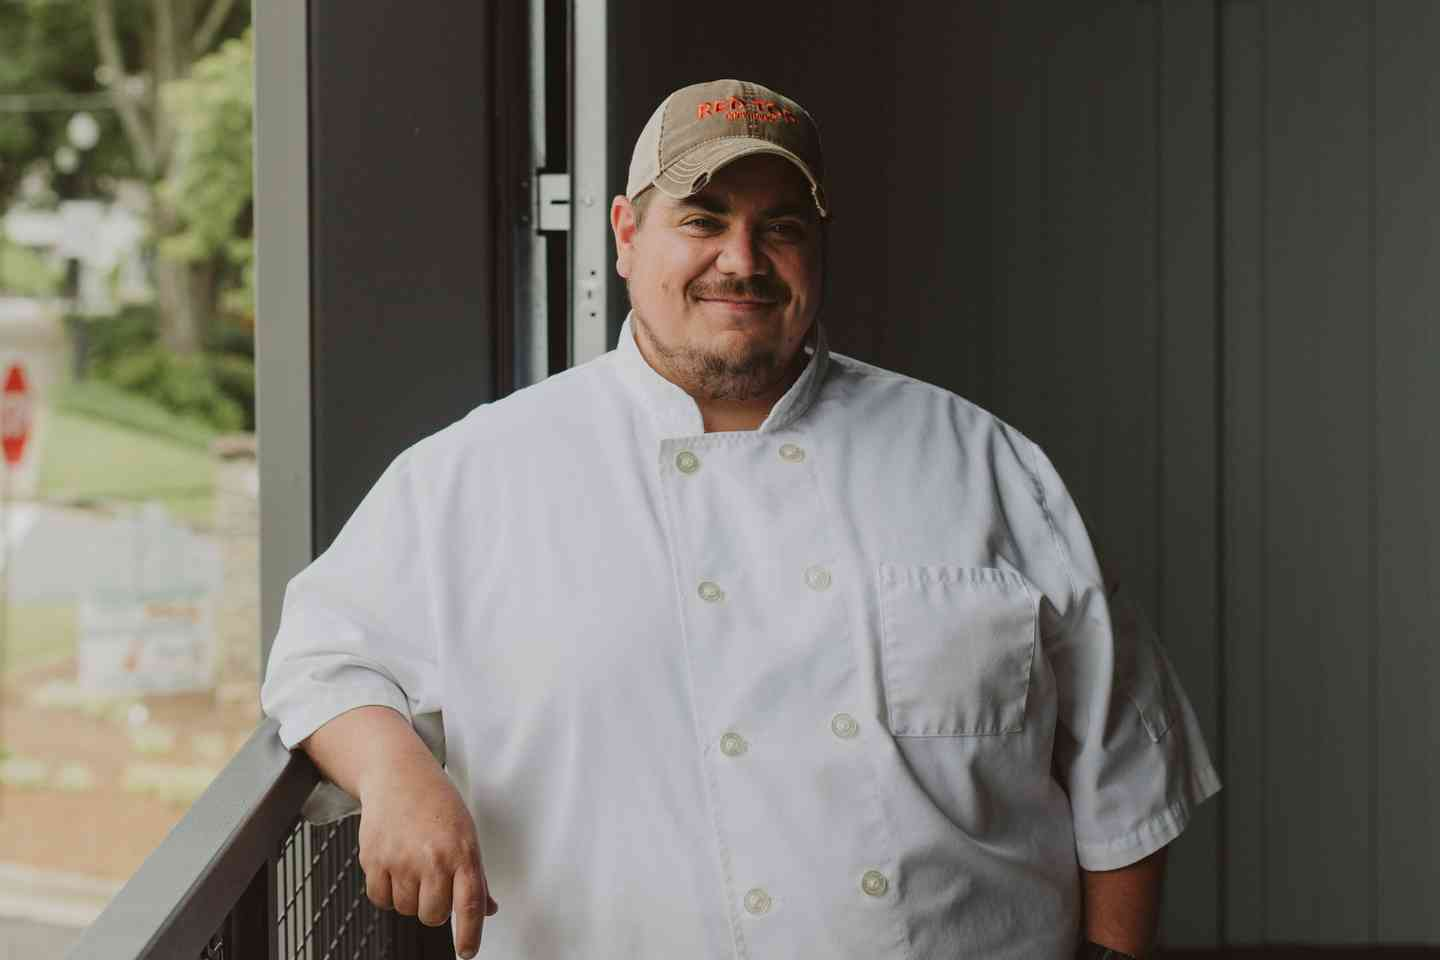 Introducing Chef Bobby King